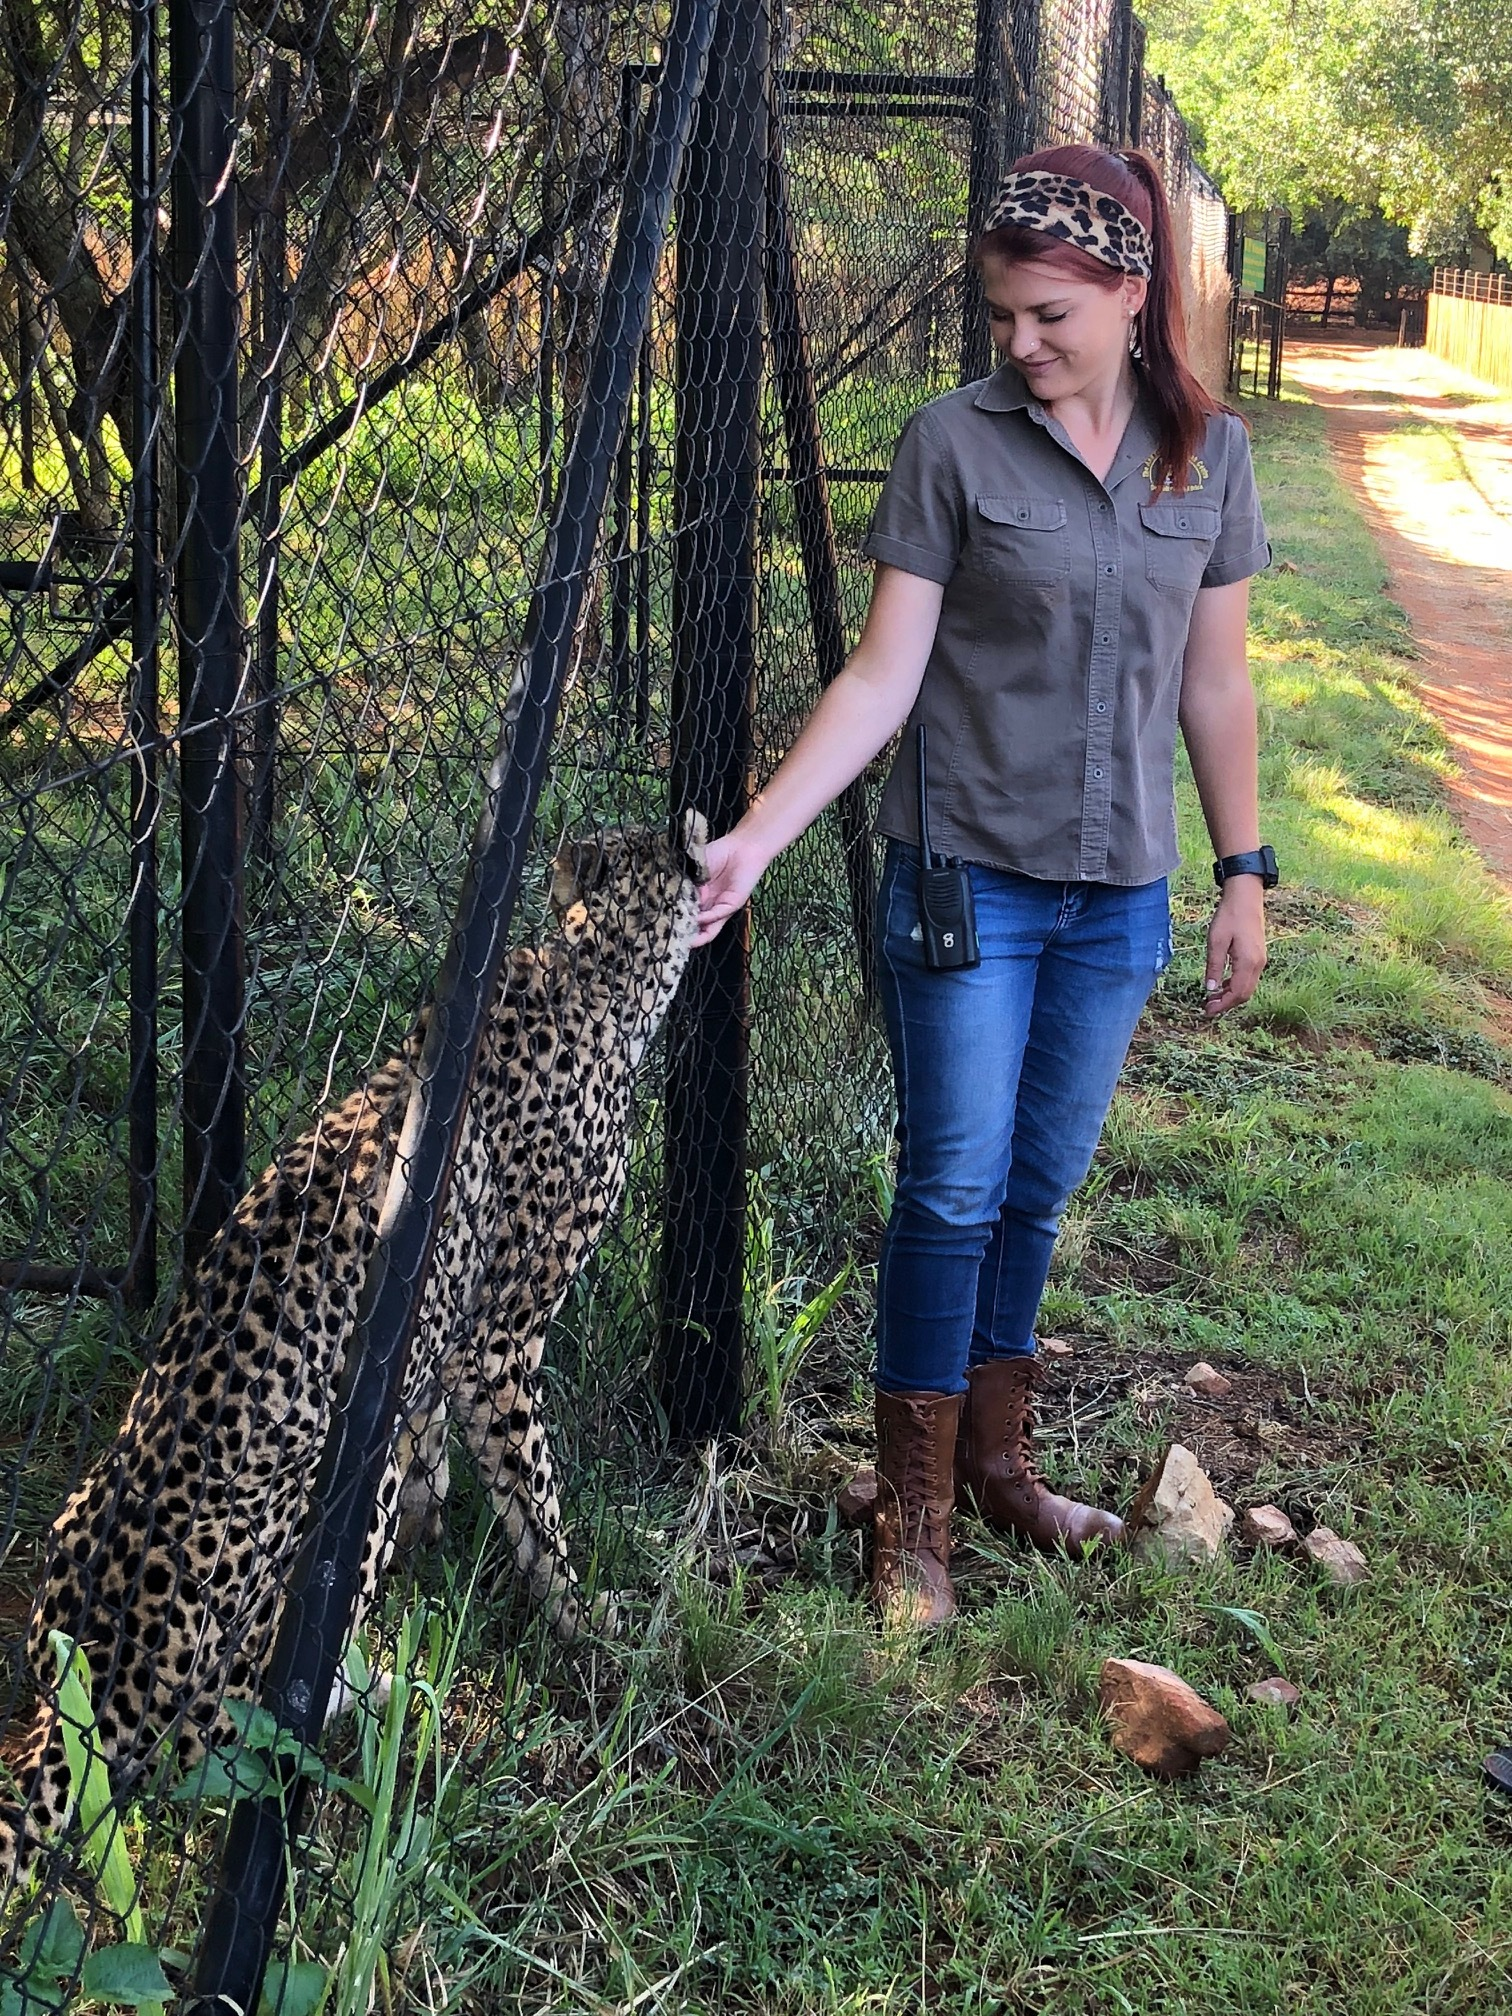 The handler at The Ann an Dyk Cheetah Centre telling guests from Amanzi Guest House about the Ambassador Cheetahs